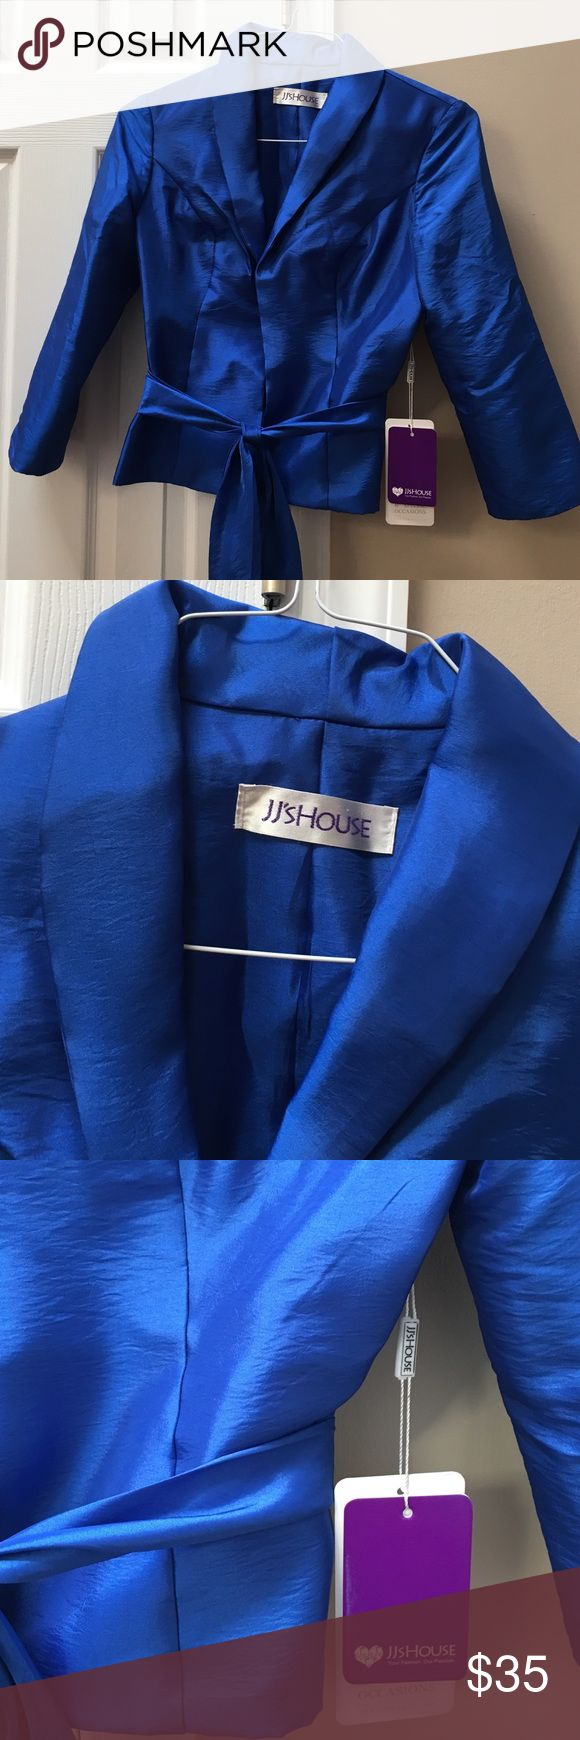 Gorgeous satin royal blue blazer This royal blue blazer is amazing!  I have this brand new because it was too small for and I had to order a size up. It's perfect over a dress for a fancy party.  Got tons of compliments! Other